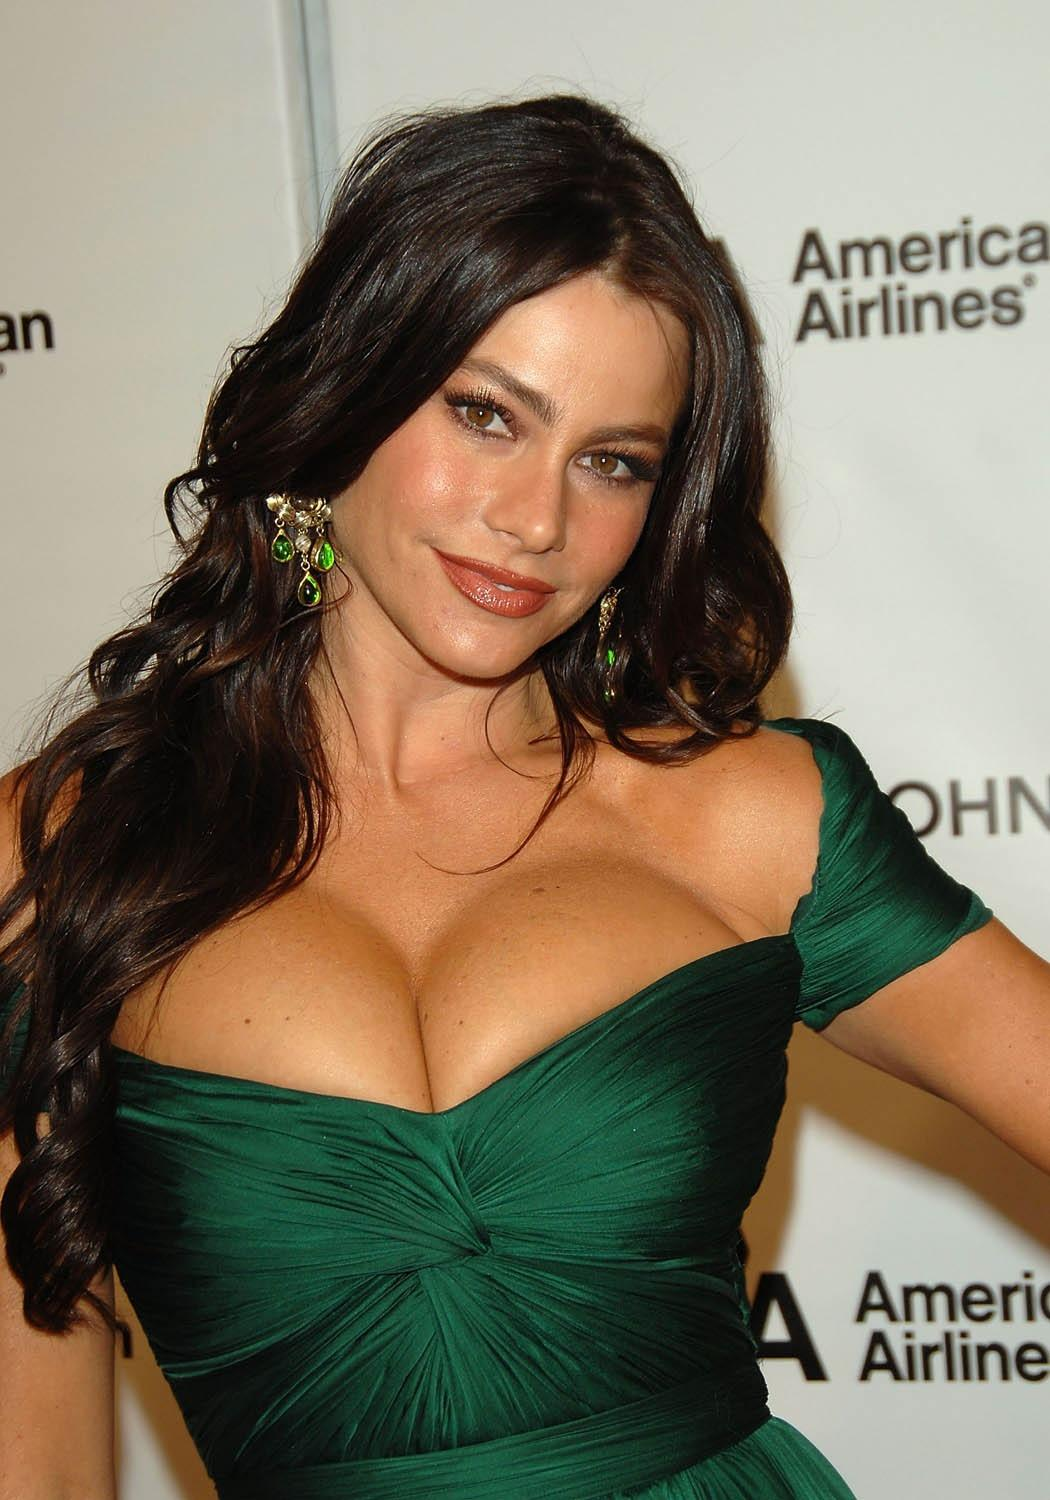 Sofia Vergara born July 10, 1972 (age 46)